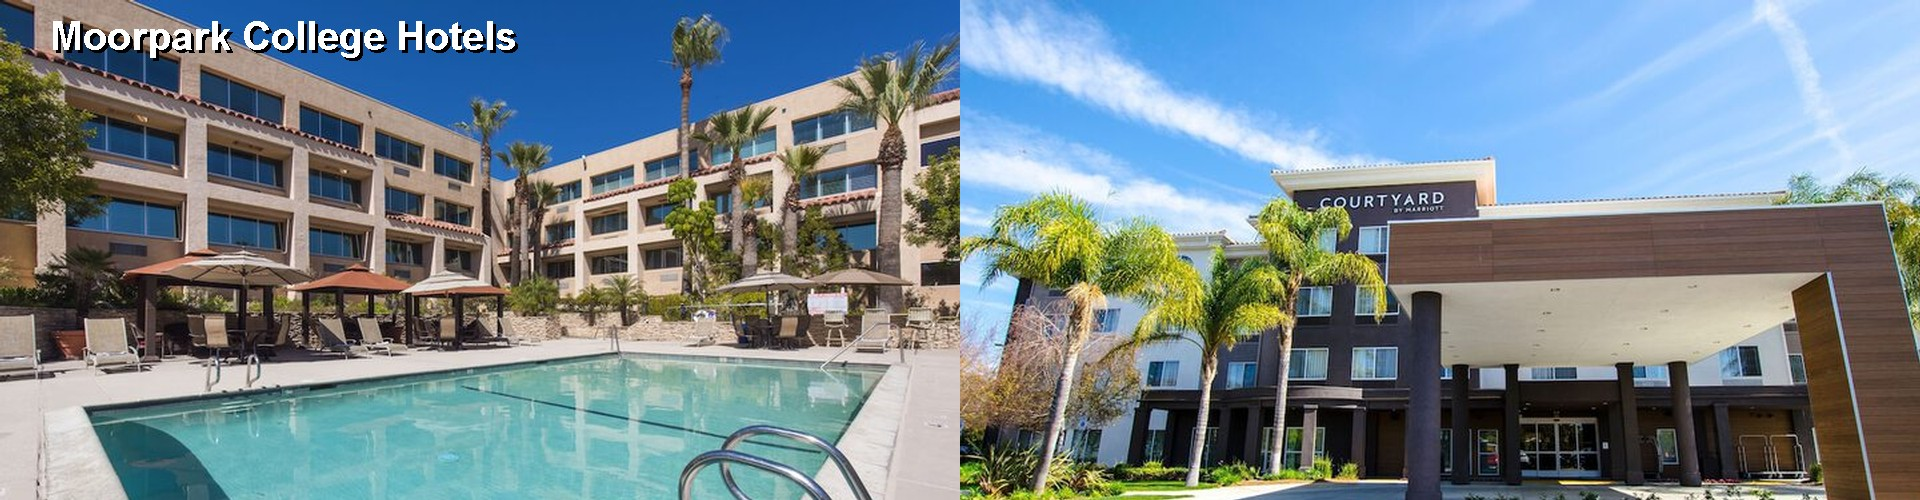 5 Best Hotels Near Moorpark College